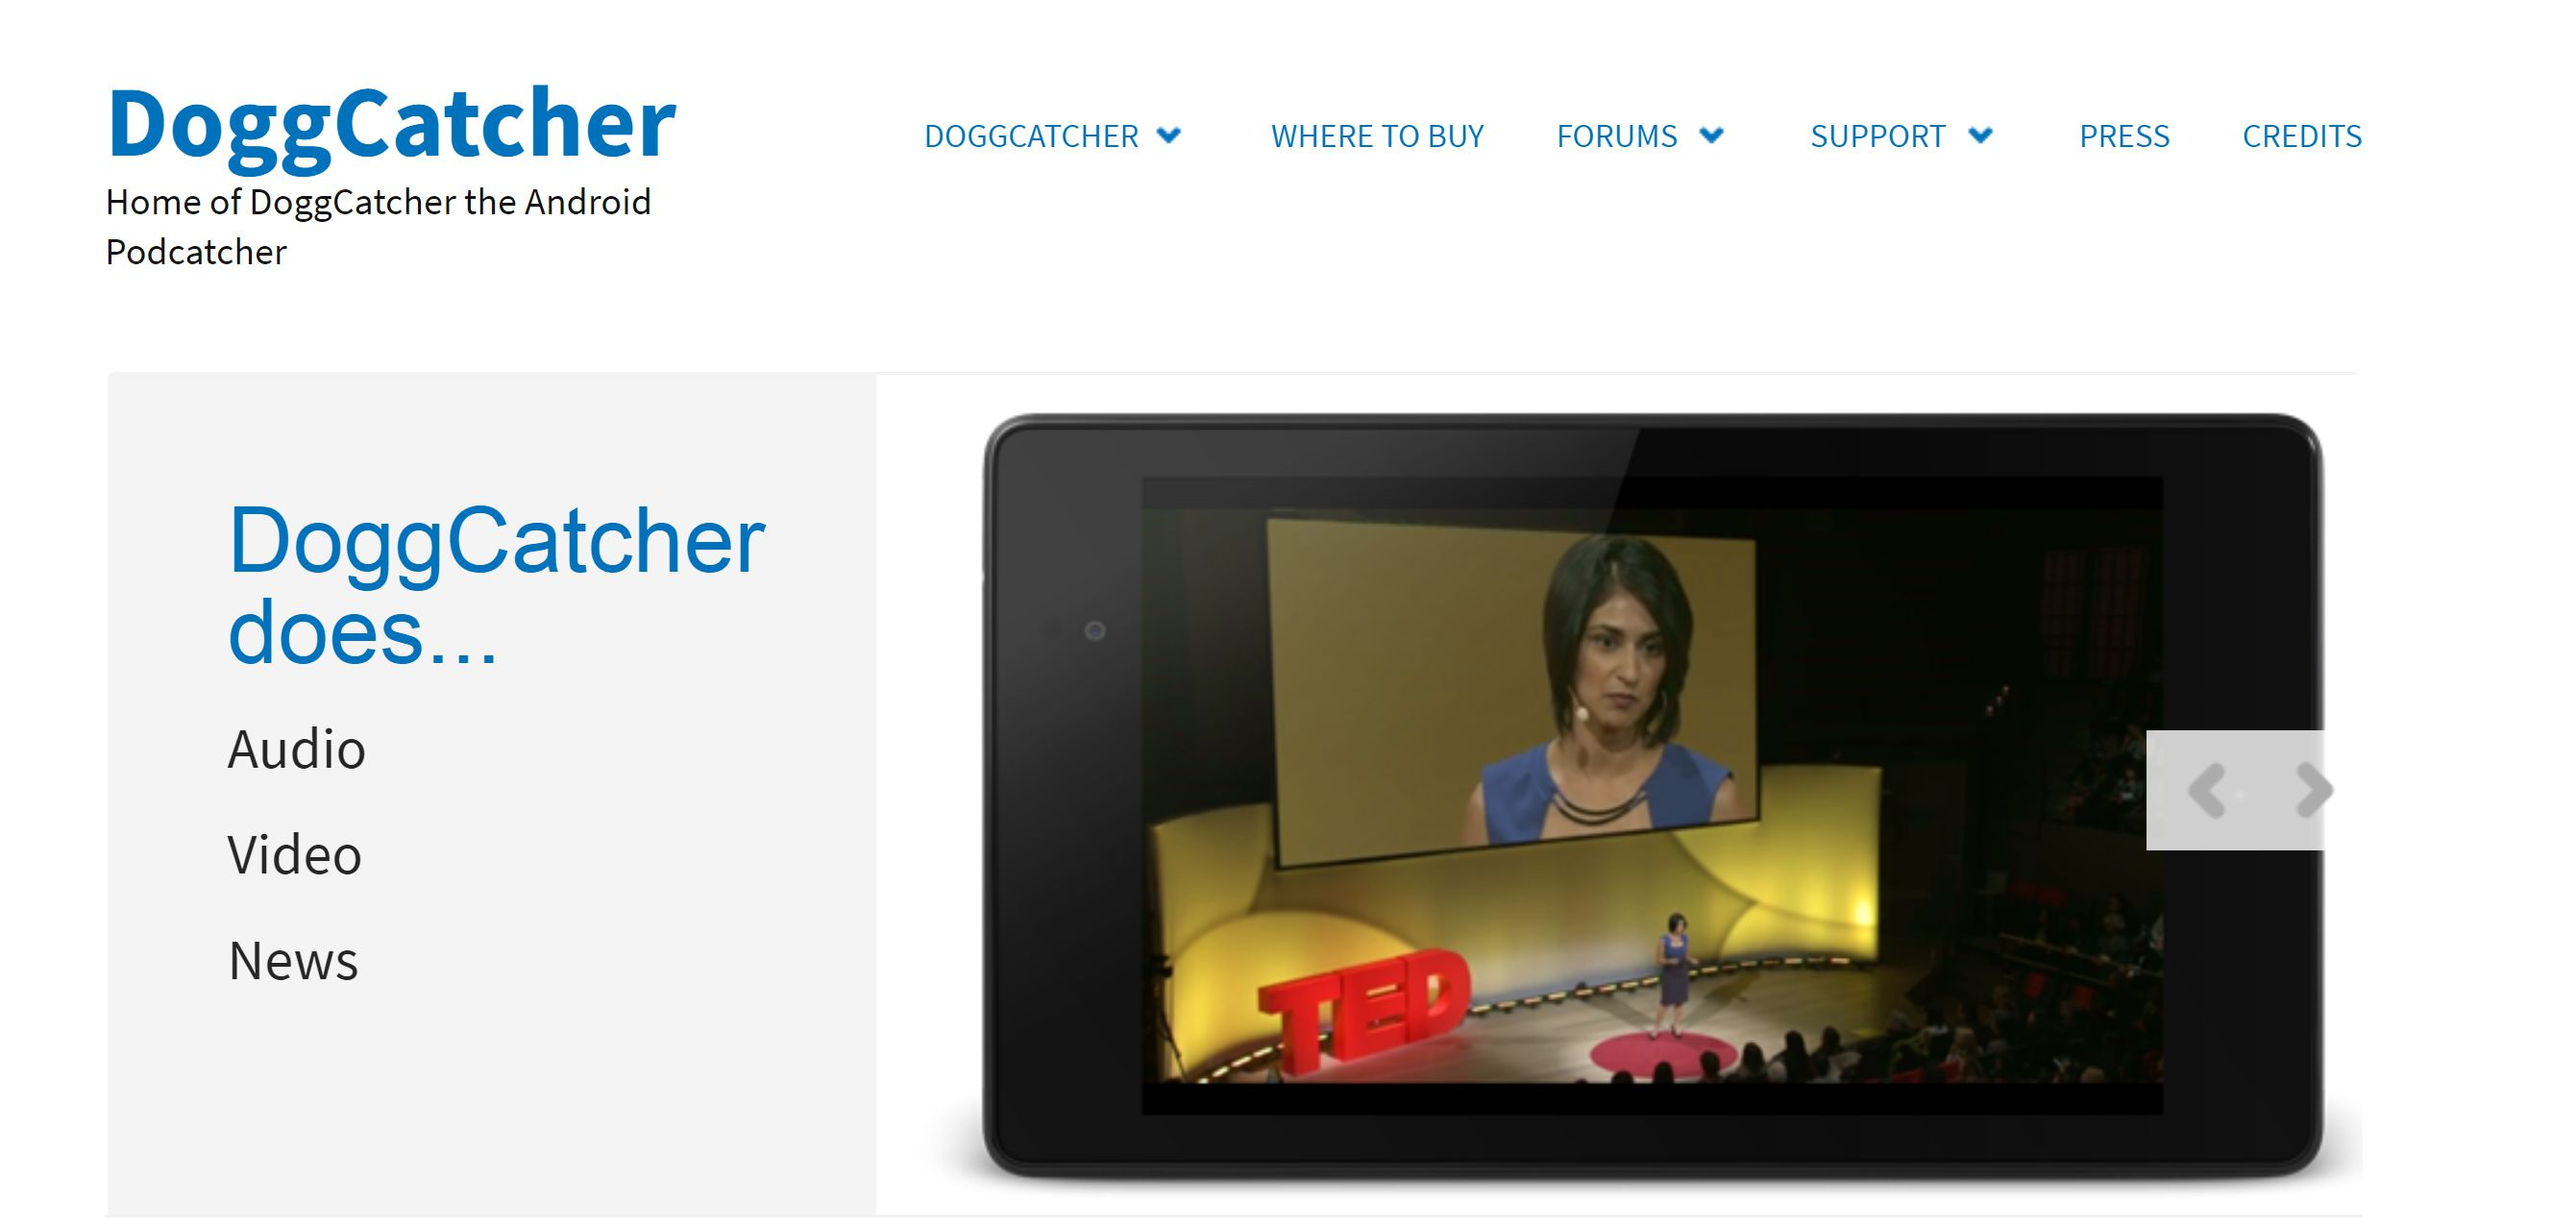 PC screenshot of DaggCatcher website with video playing on a smarphone